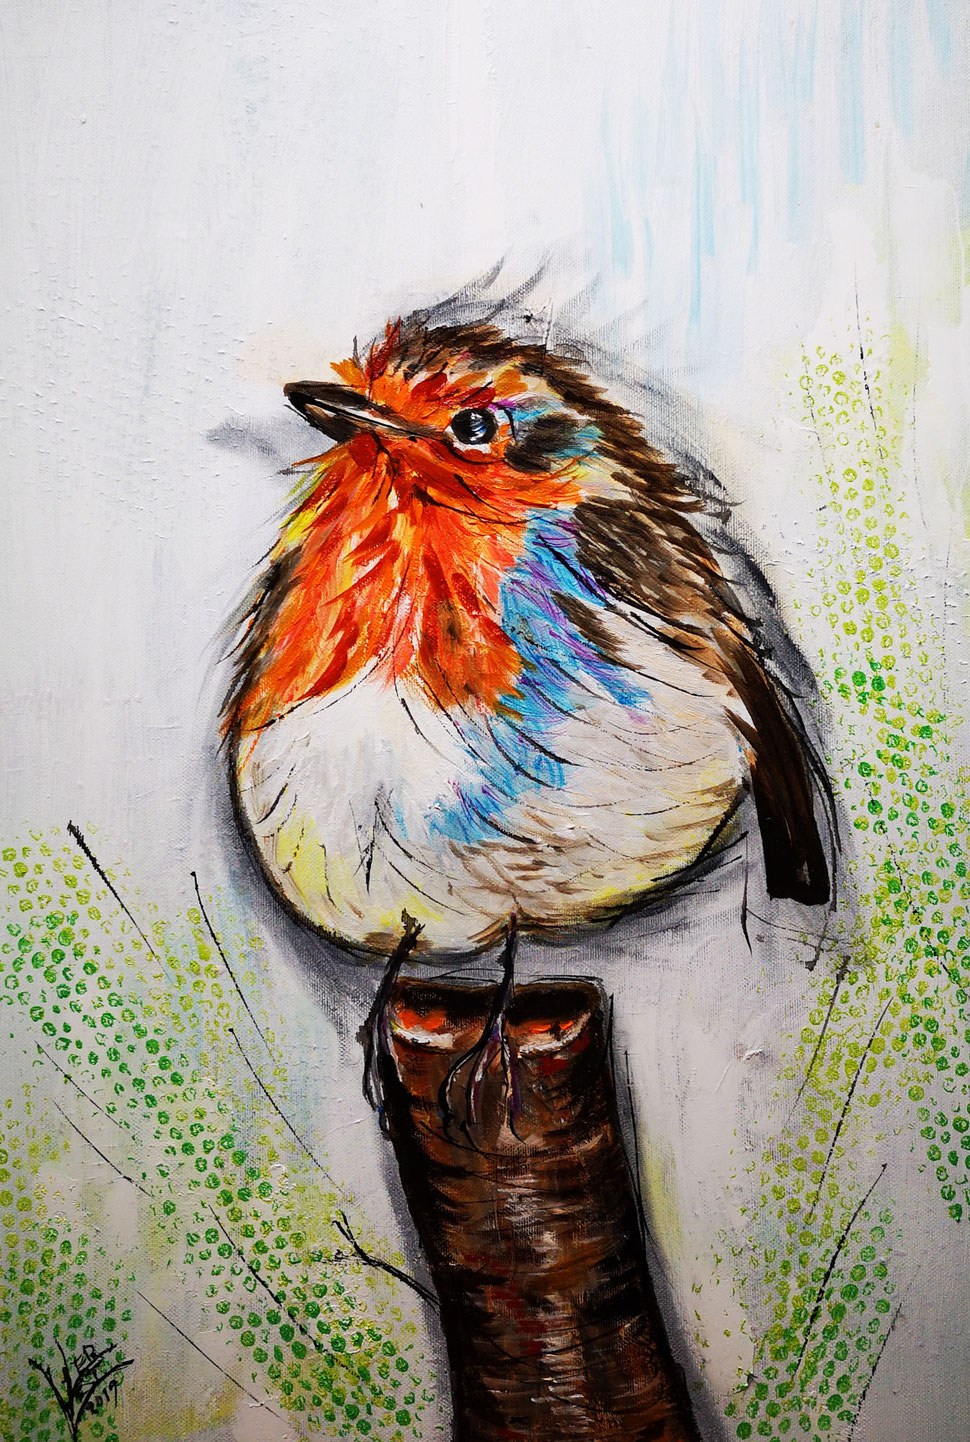 49. Robin on a trunk 40x60 cm